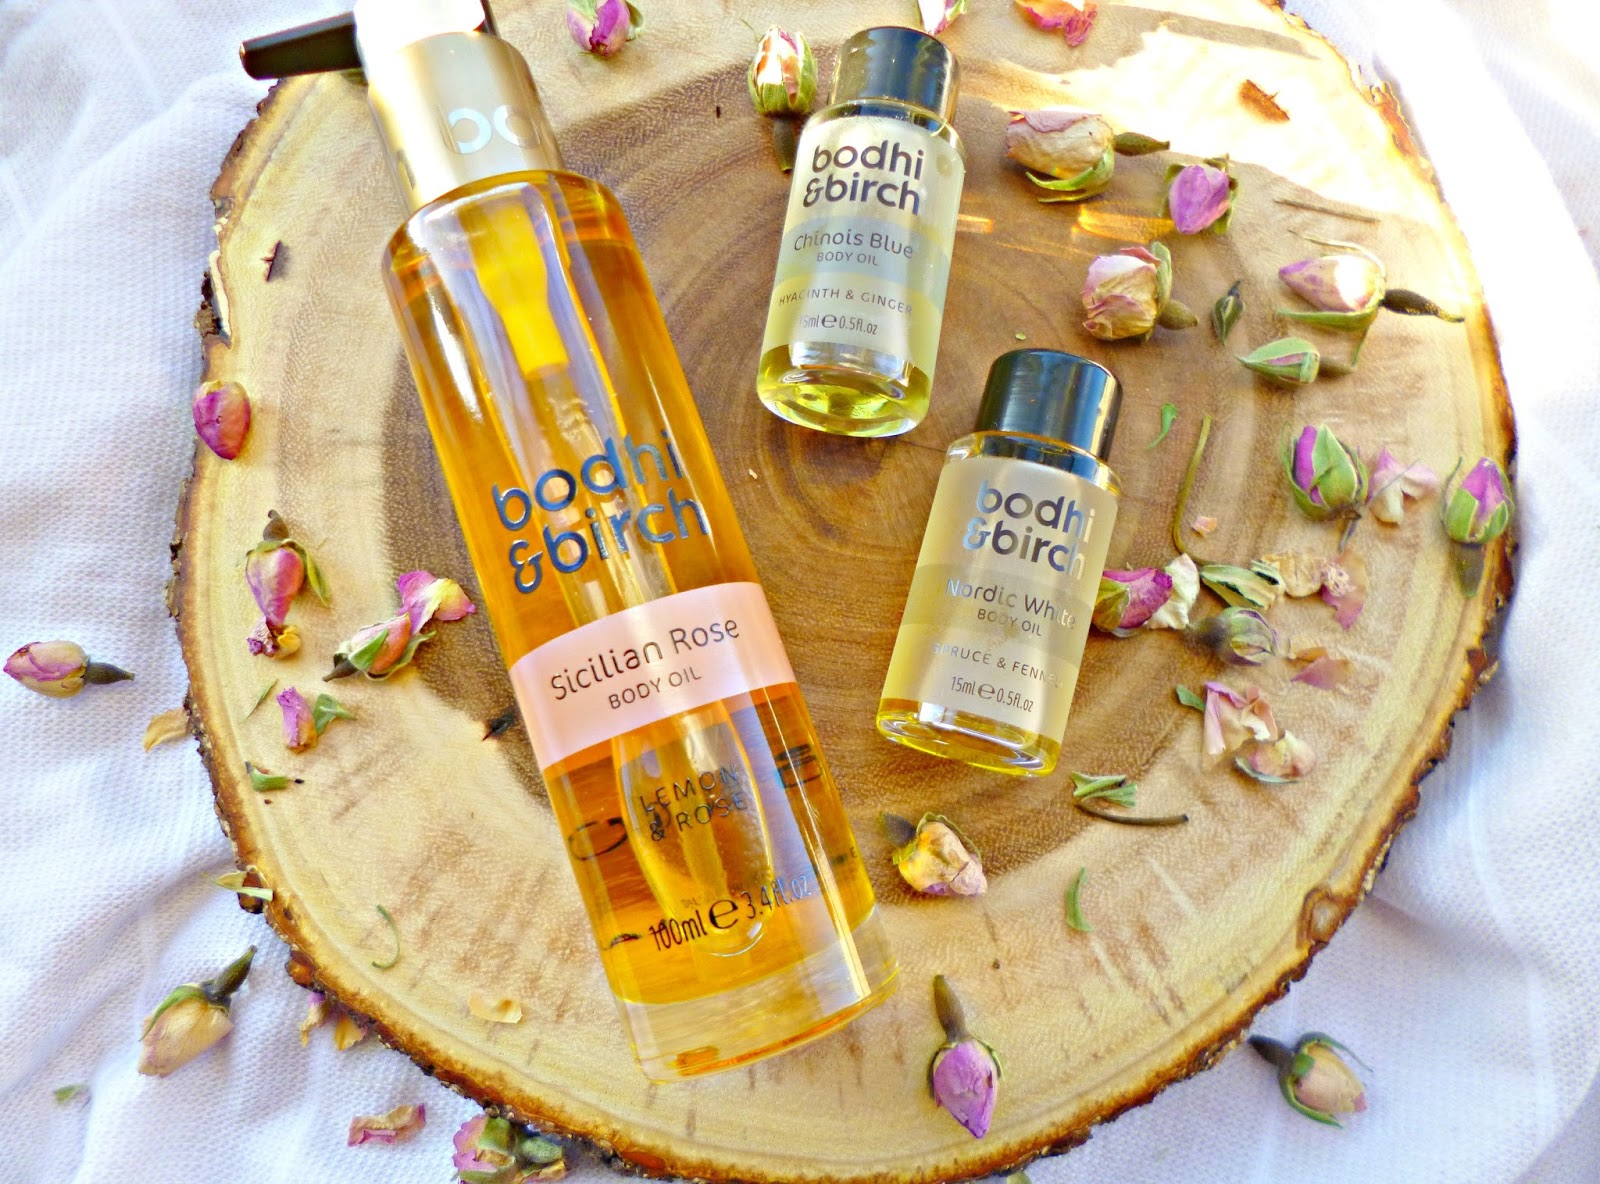 New in: Bodhi and Birch Body oil collection